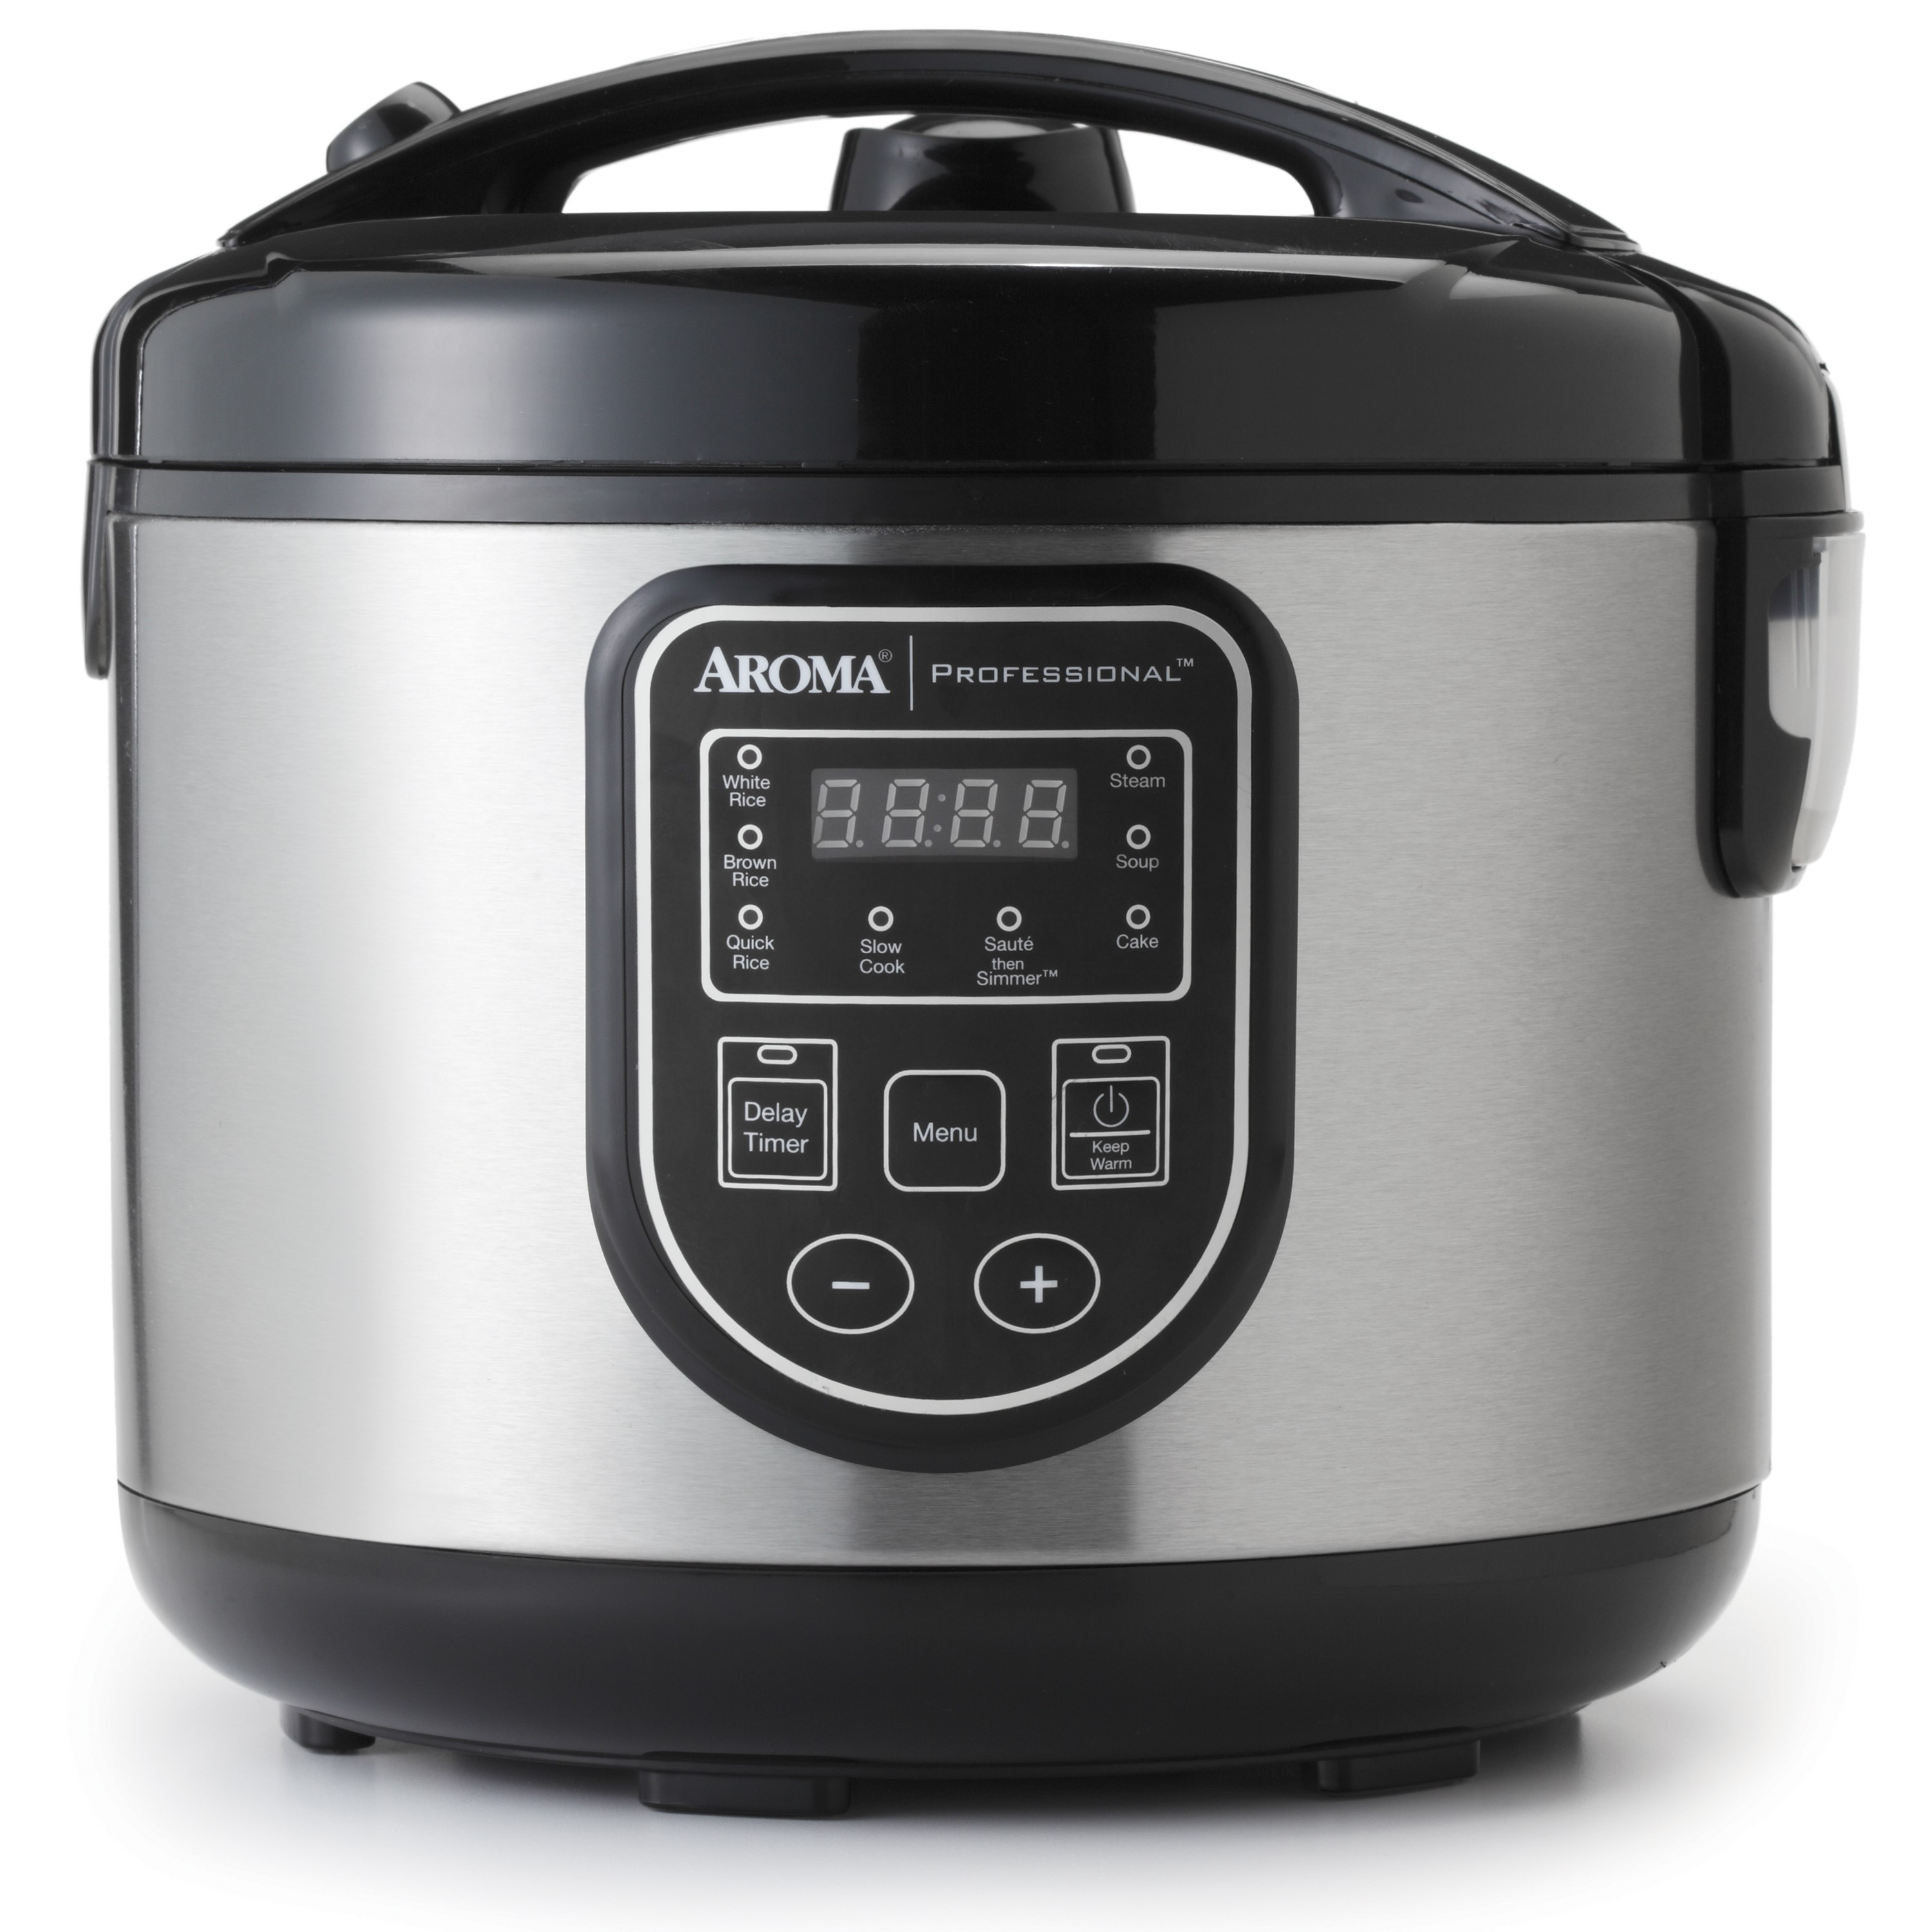 Aroma 16 Cup Cooked Digital Rice Cooker Slow Cooker And Food